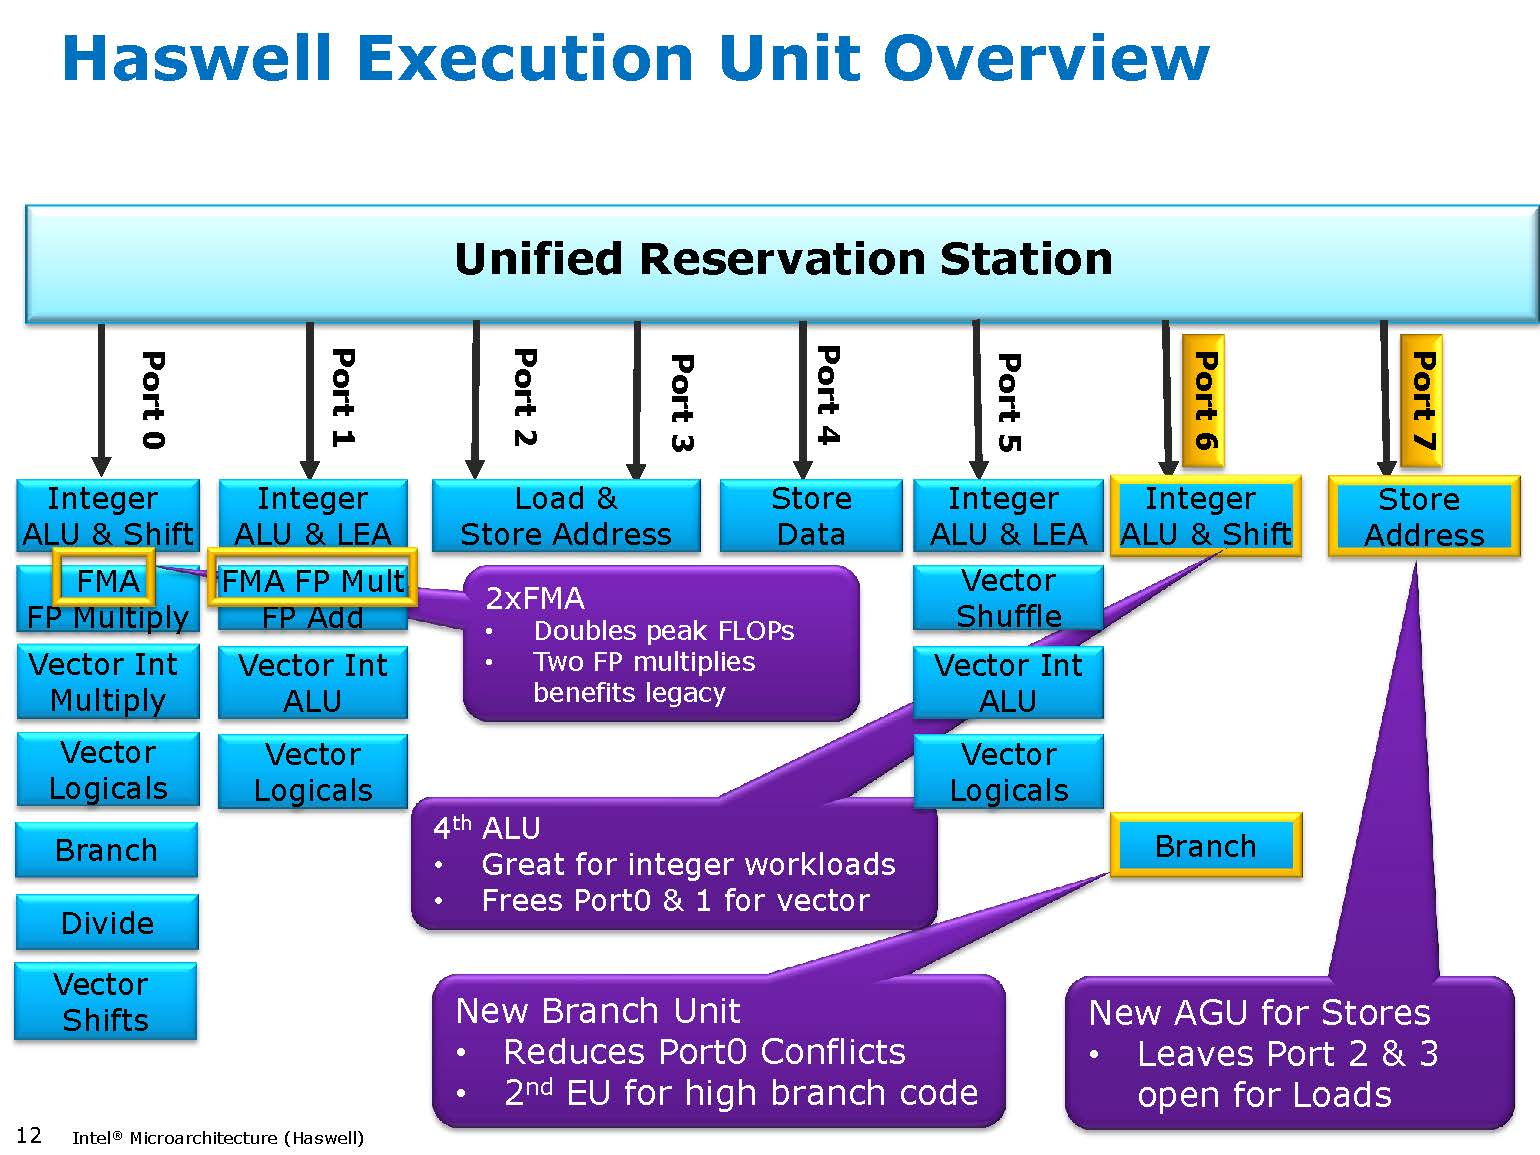 Intel Core i7 execution units